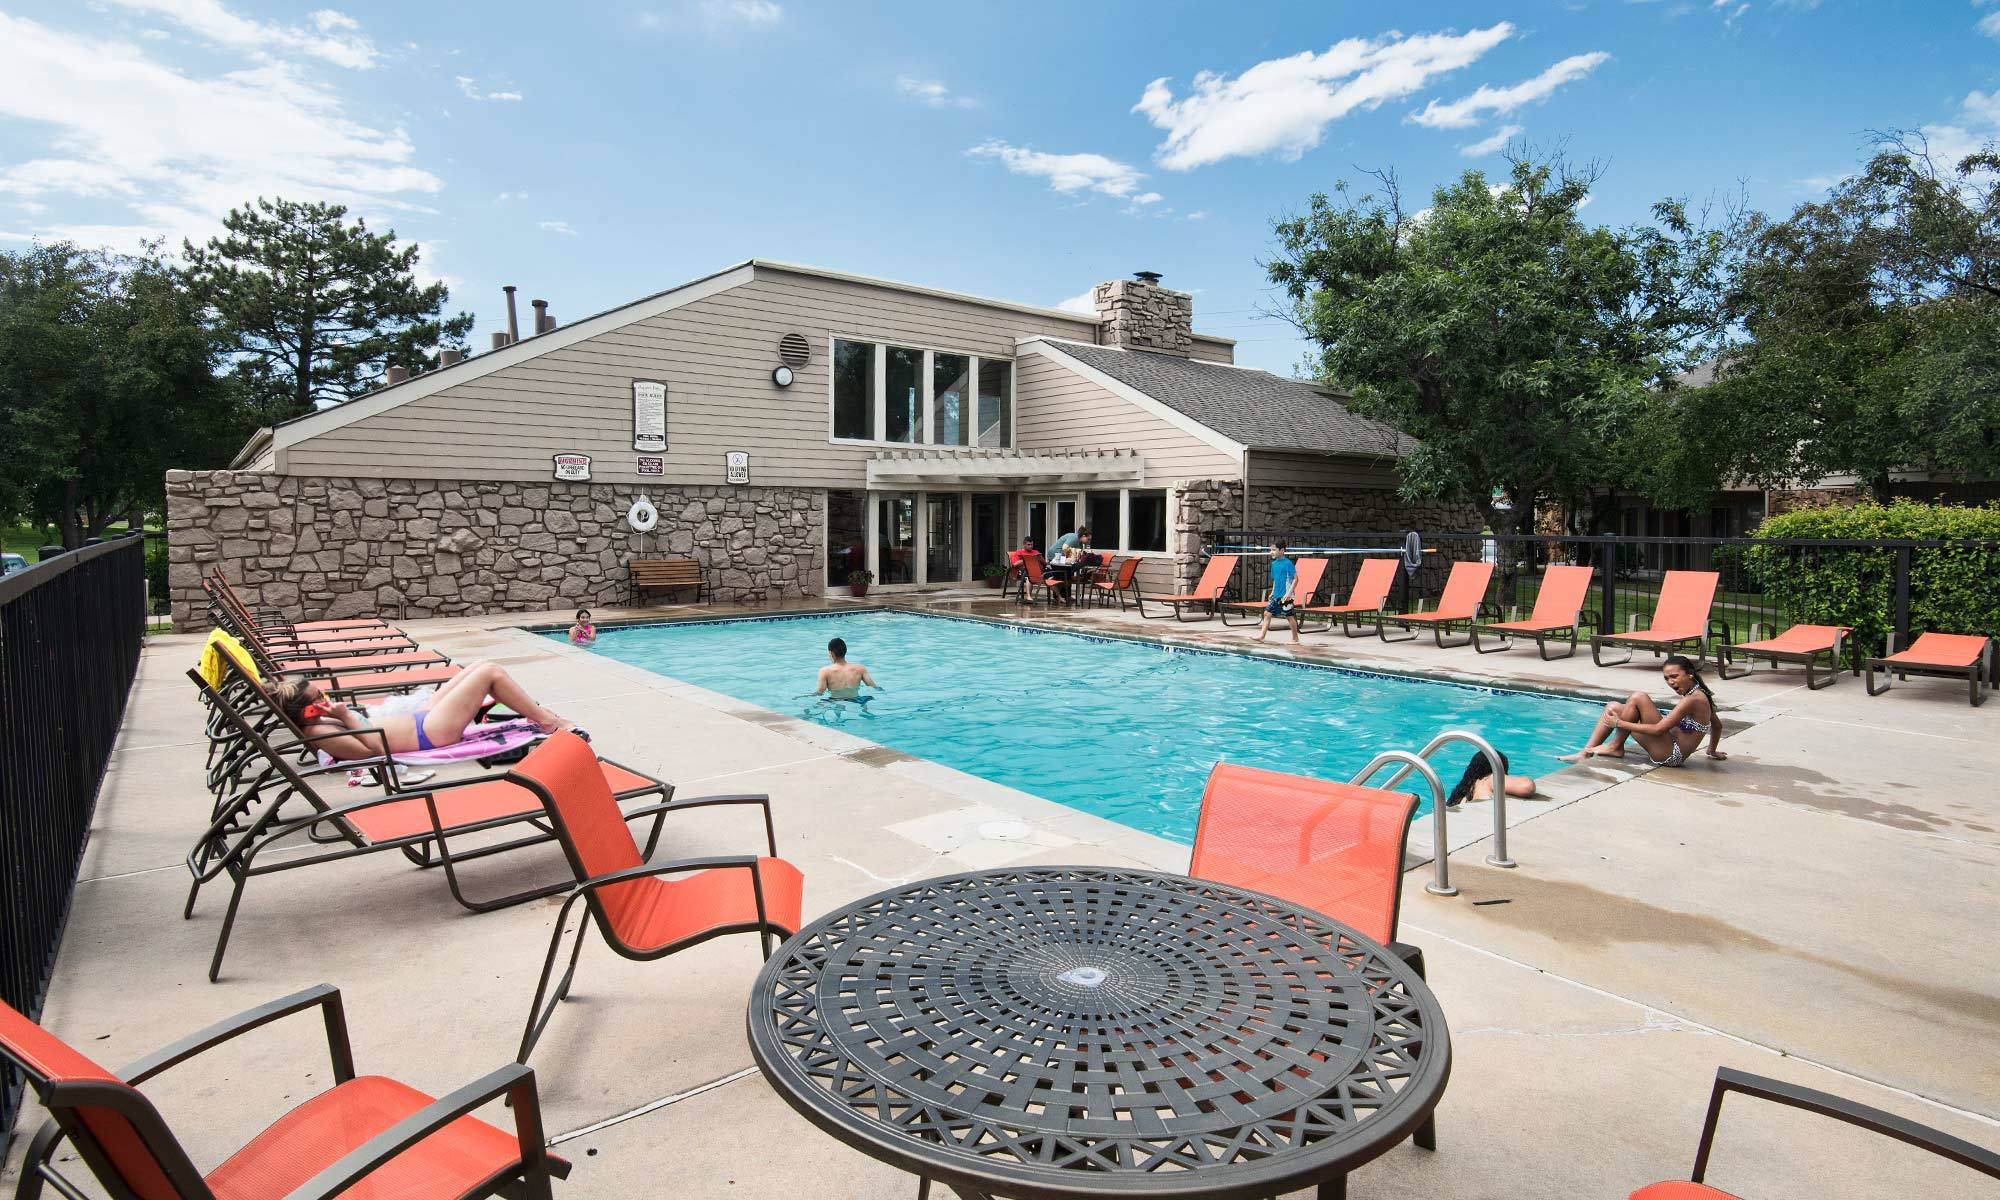 Aspen Park Apartments Wichita Swimming Pool Amenities